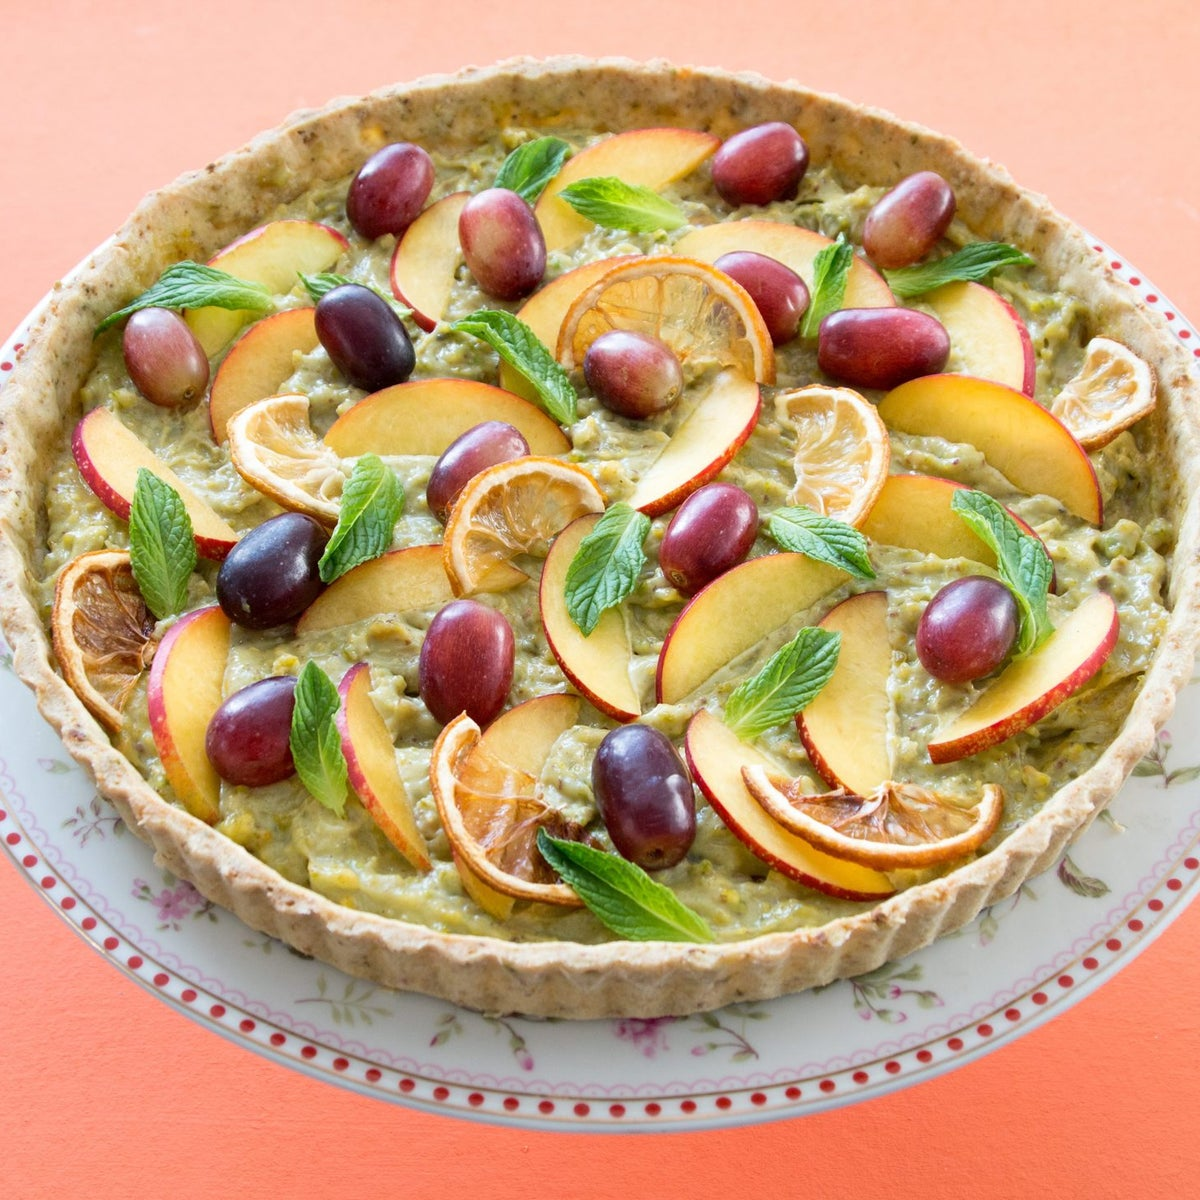 Pistachio cream tart. Not as intimidating as you might think.